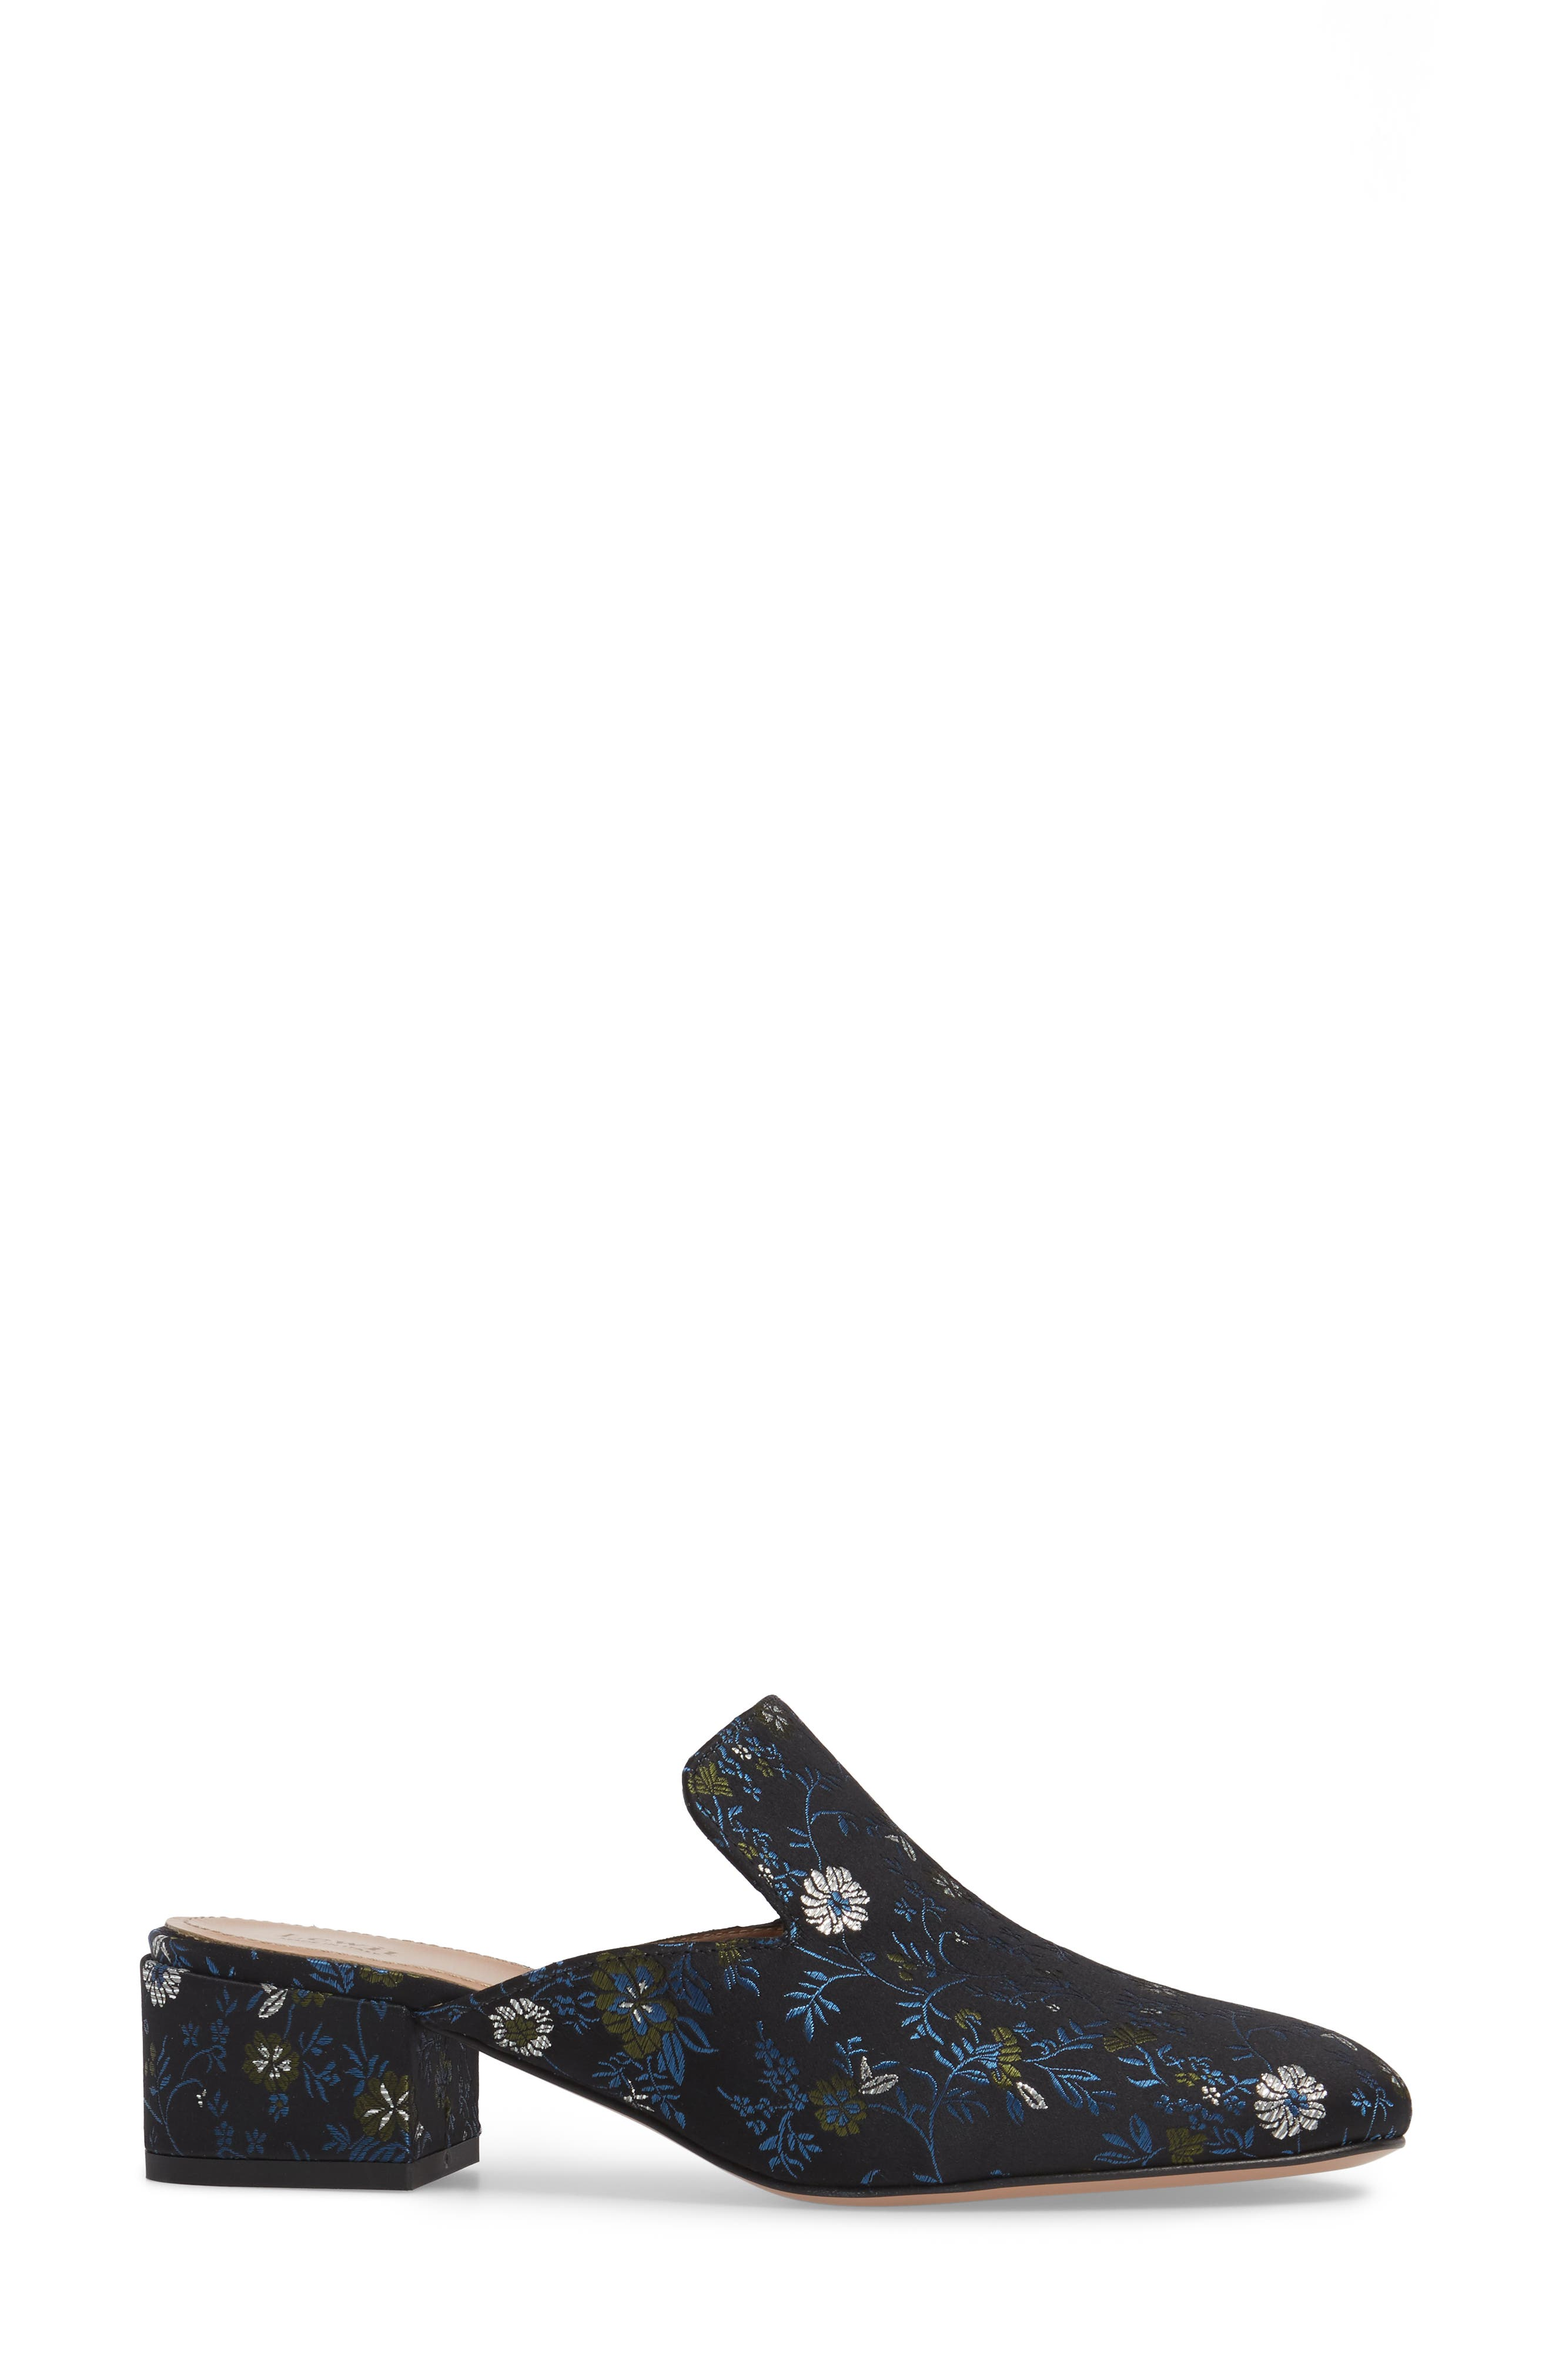 Bianca Embroidered Loafer Mule,                             Alternate thumbnail 3, color,                             005